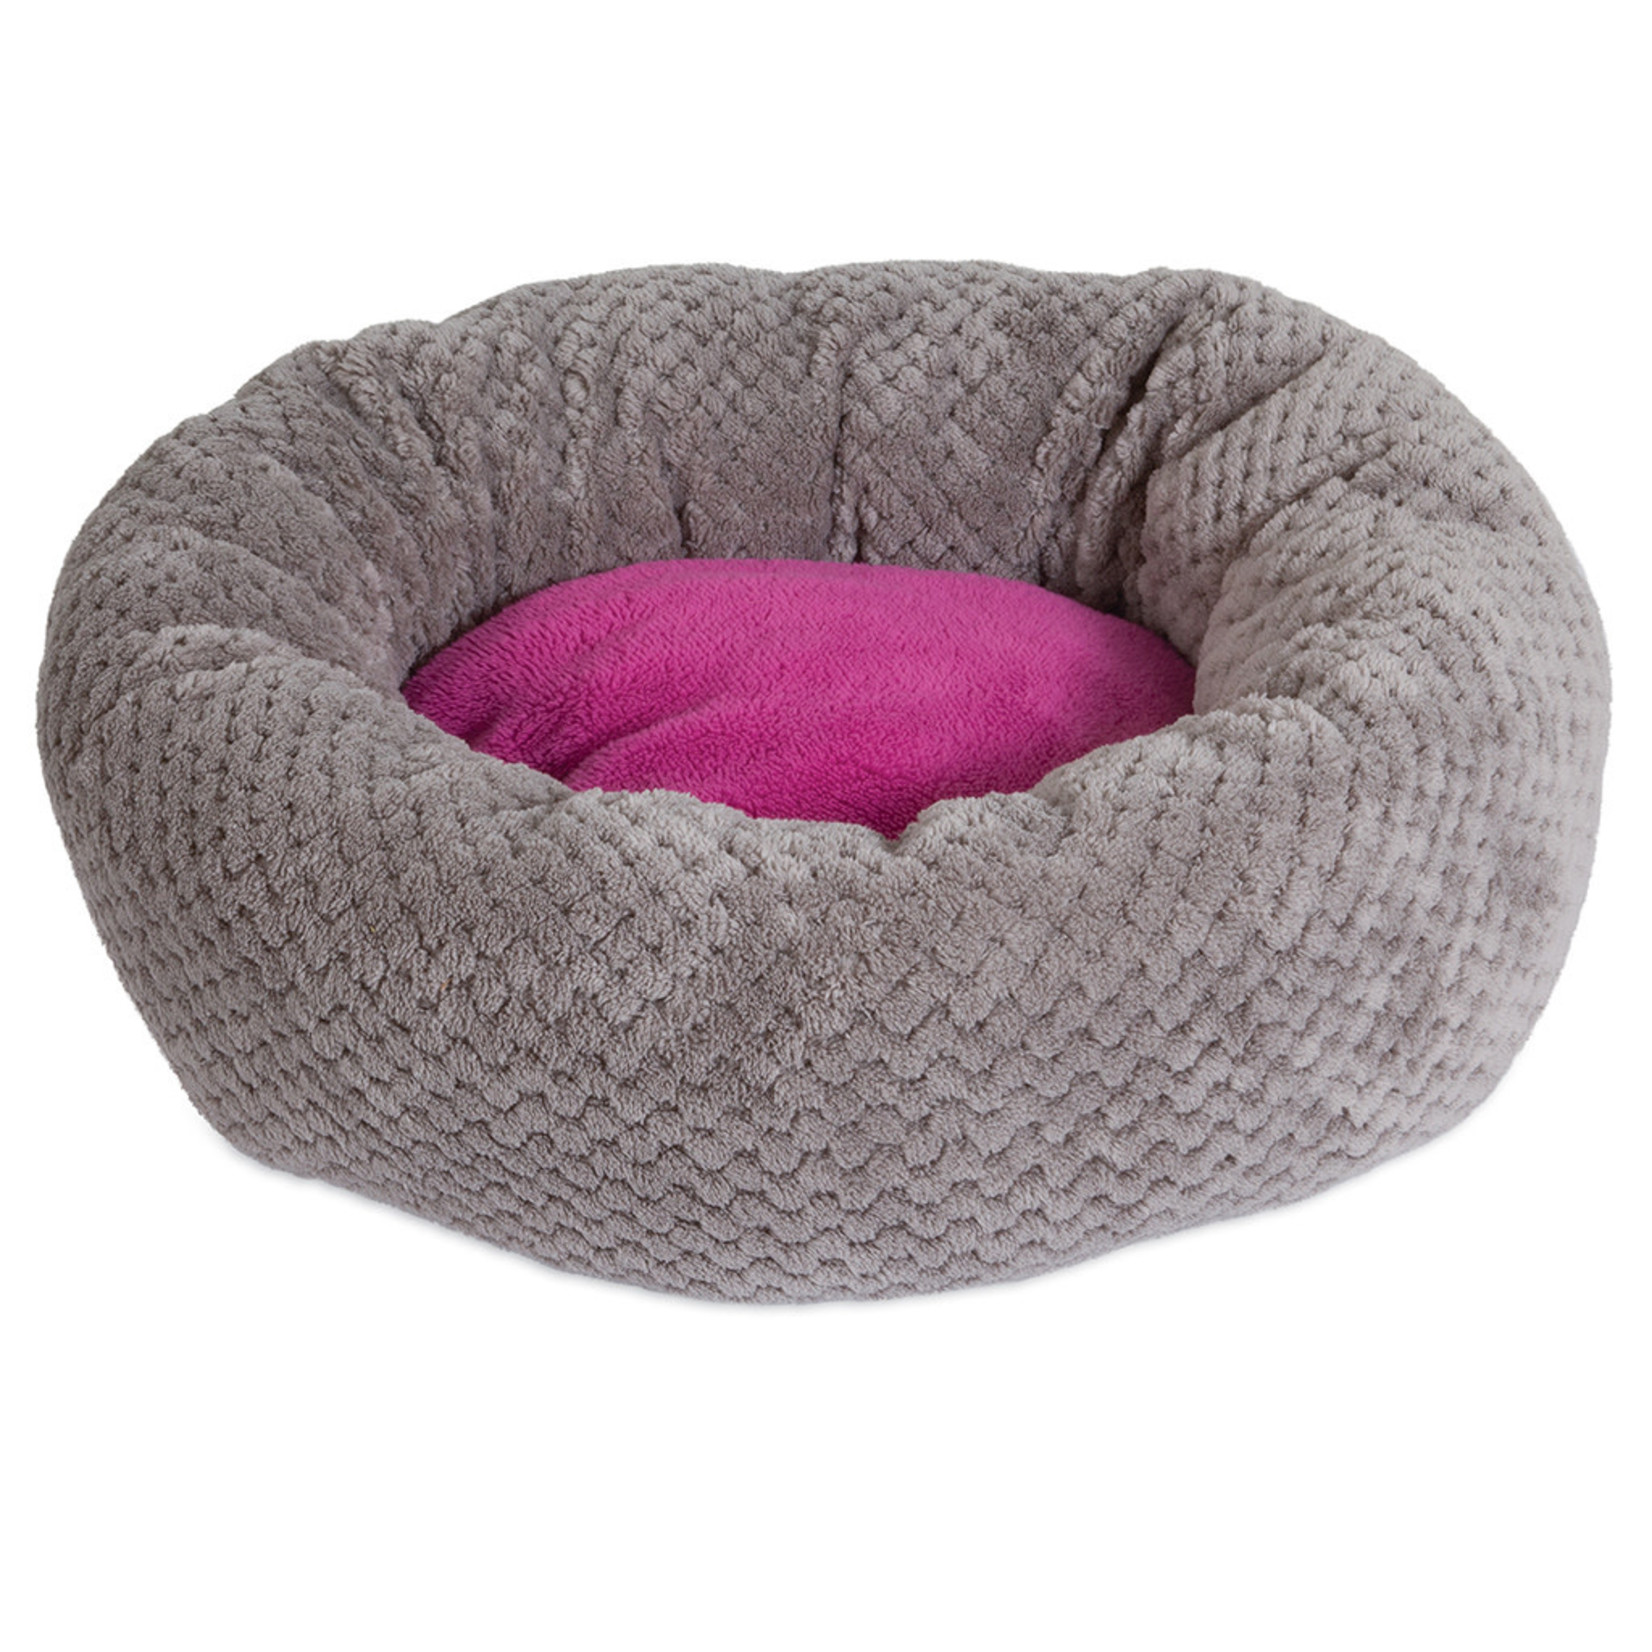 Donut Cat Bed Gray & Pink